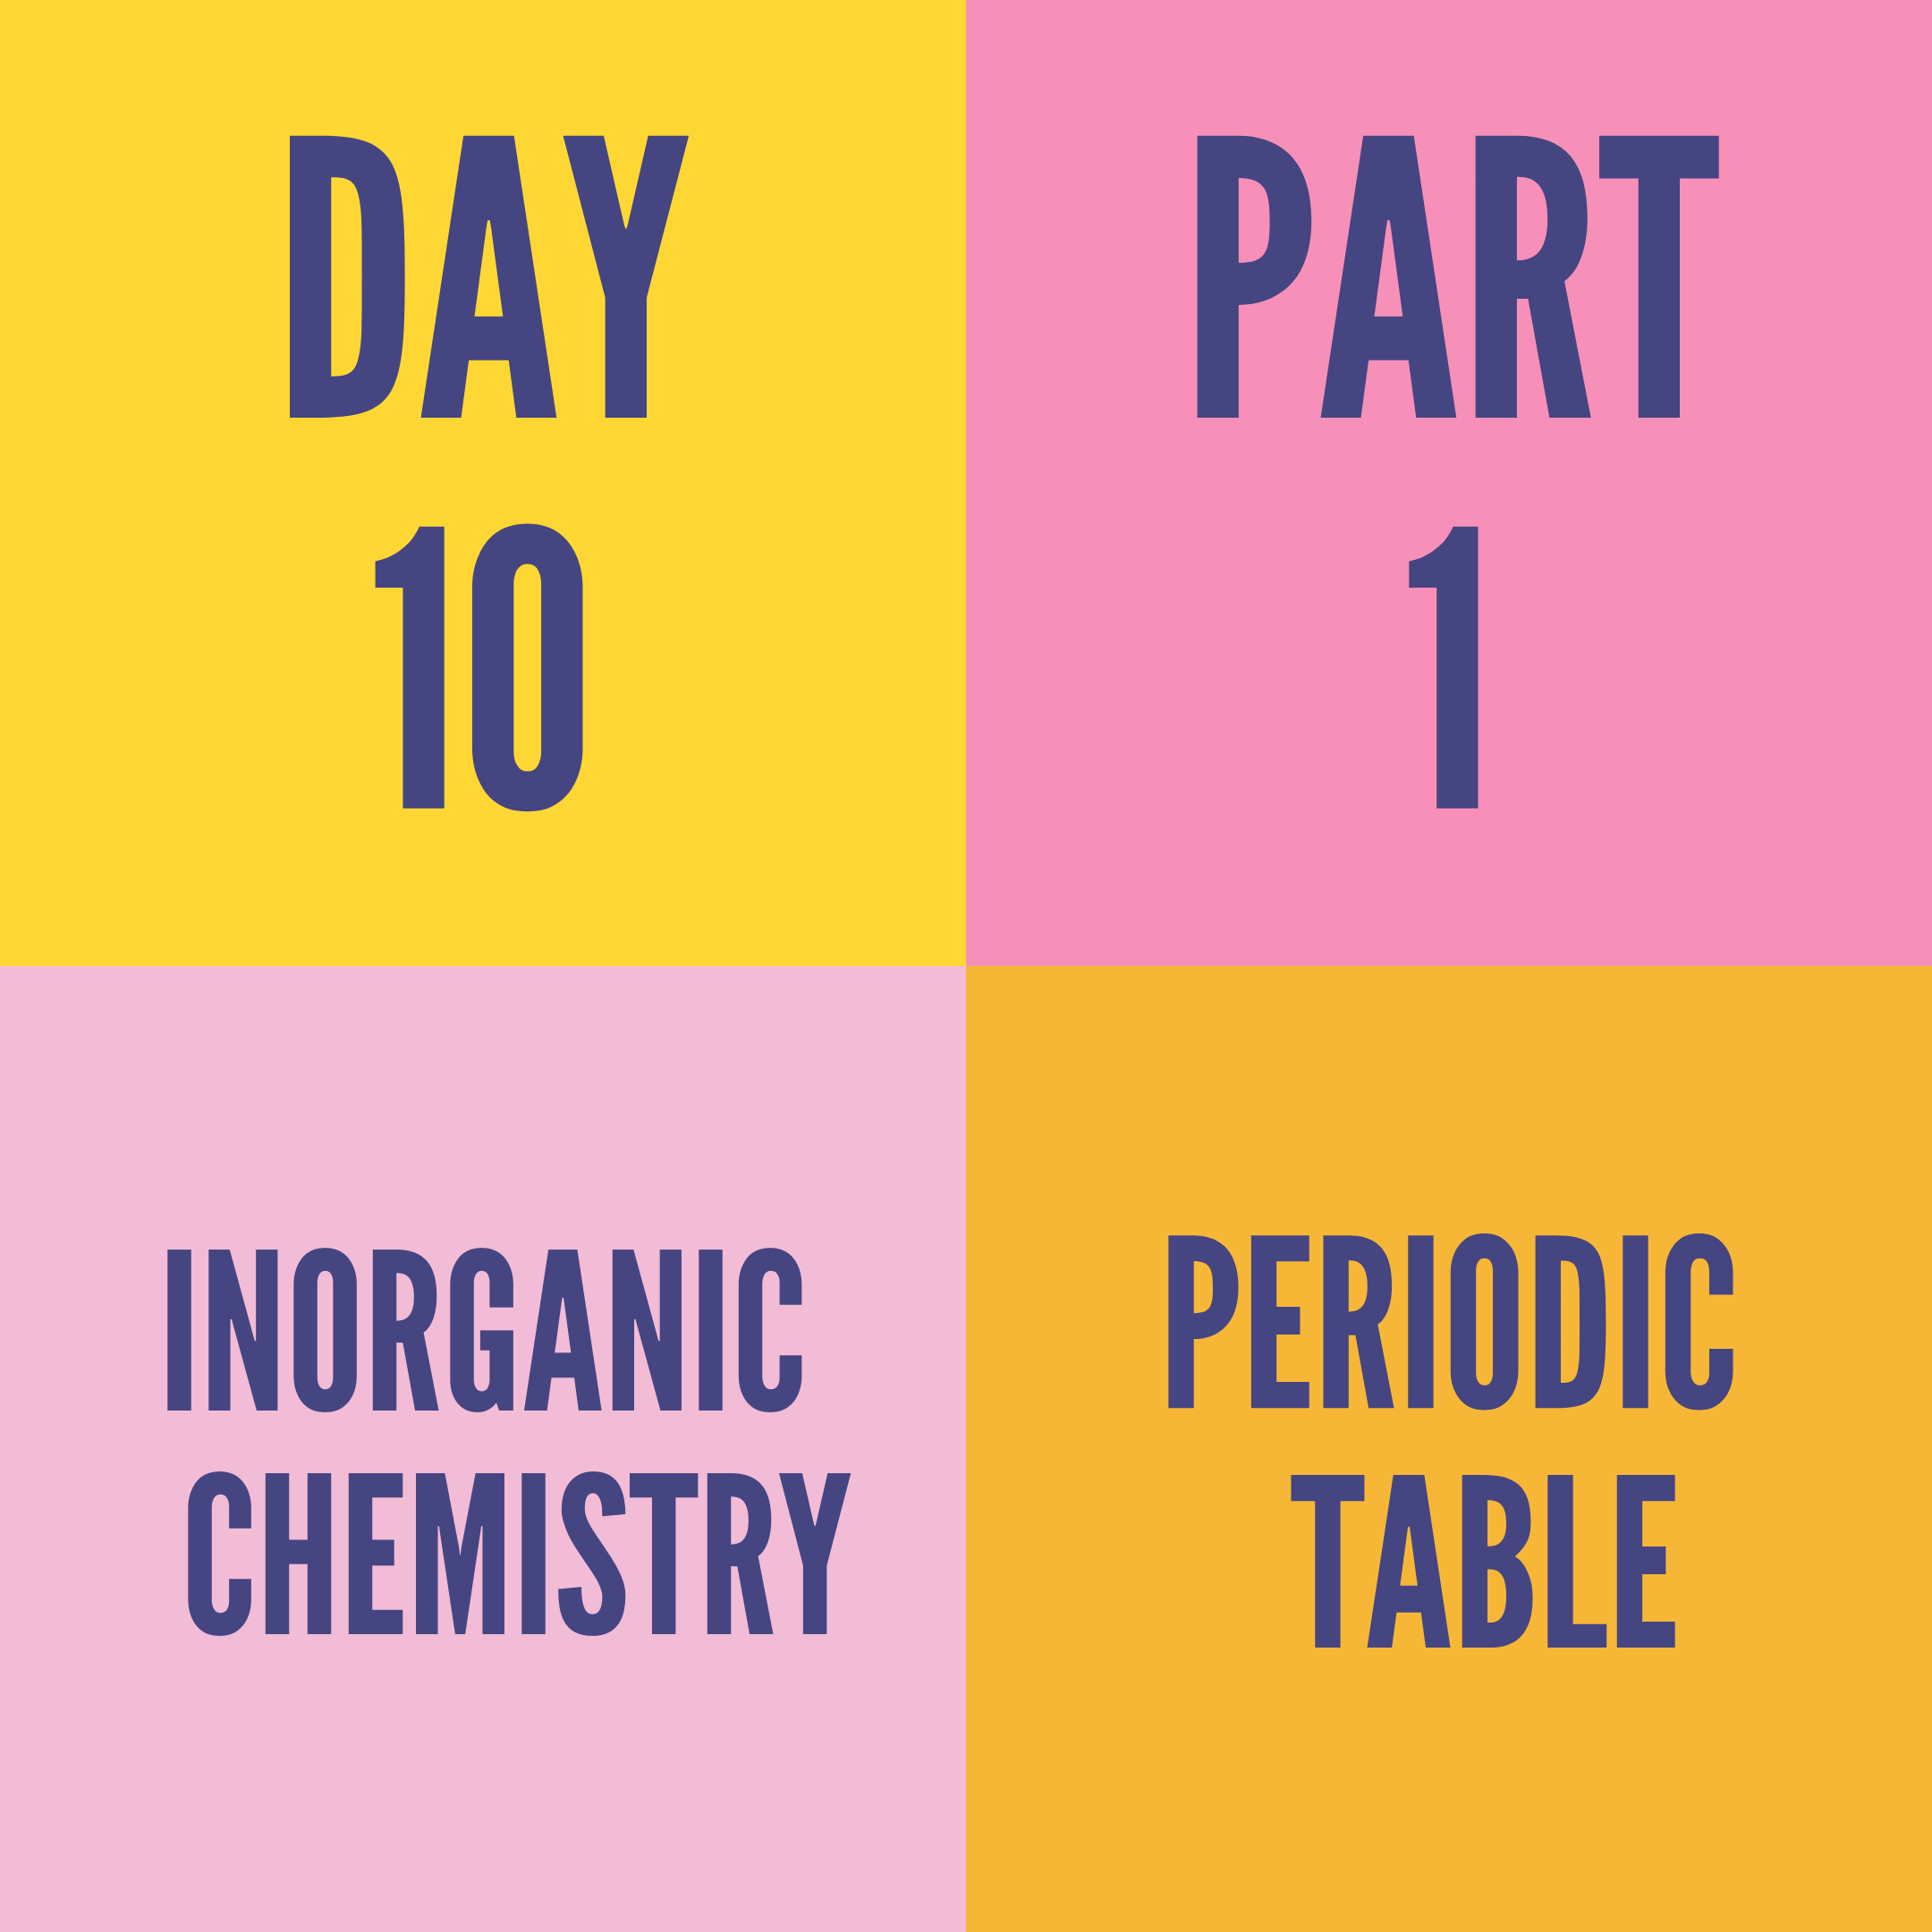 DAY-10 PART-1 PERIODIC TABLE